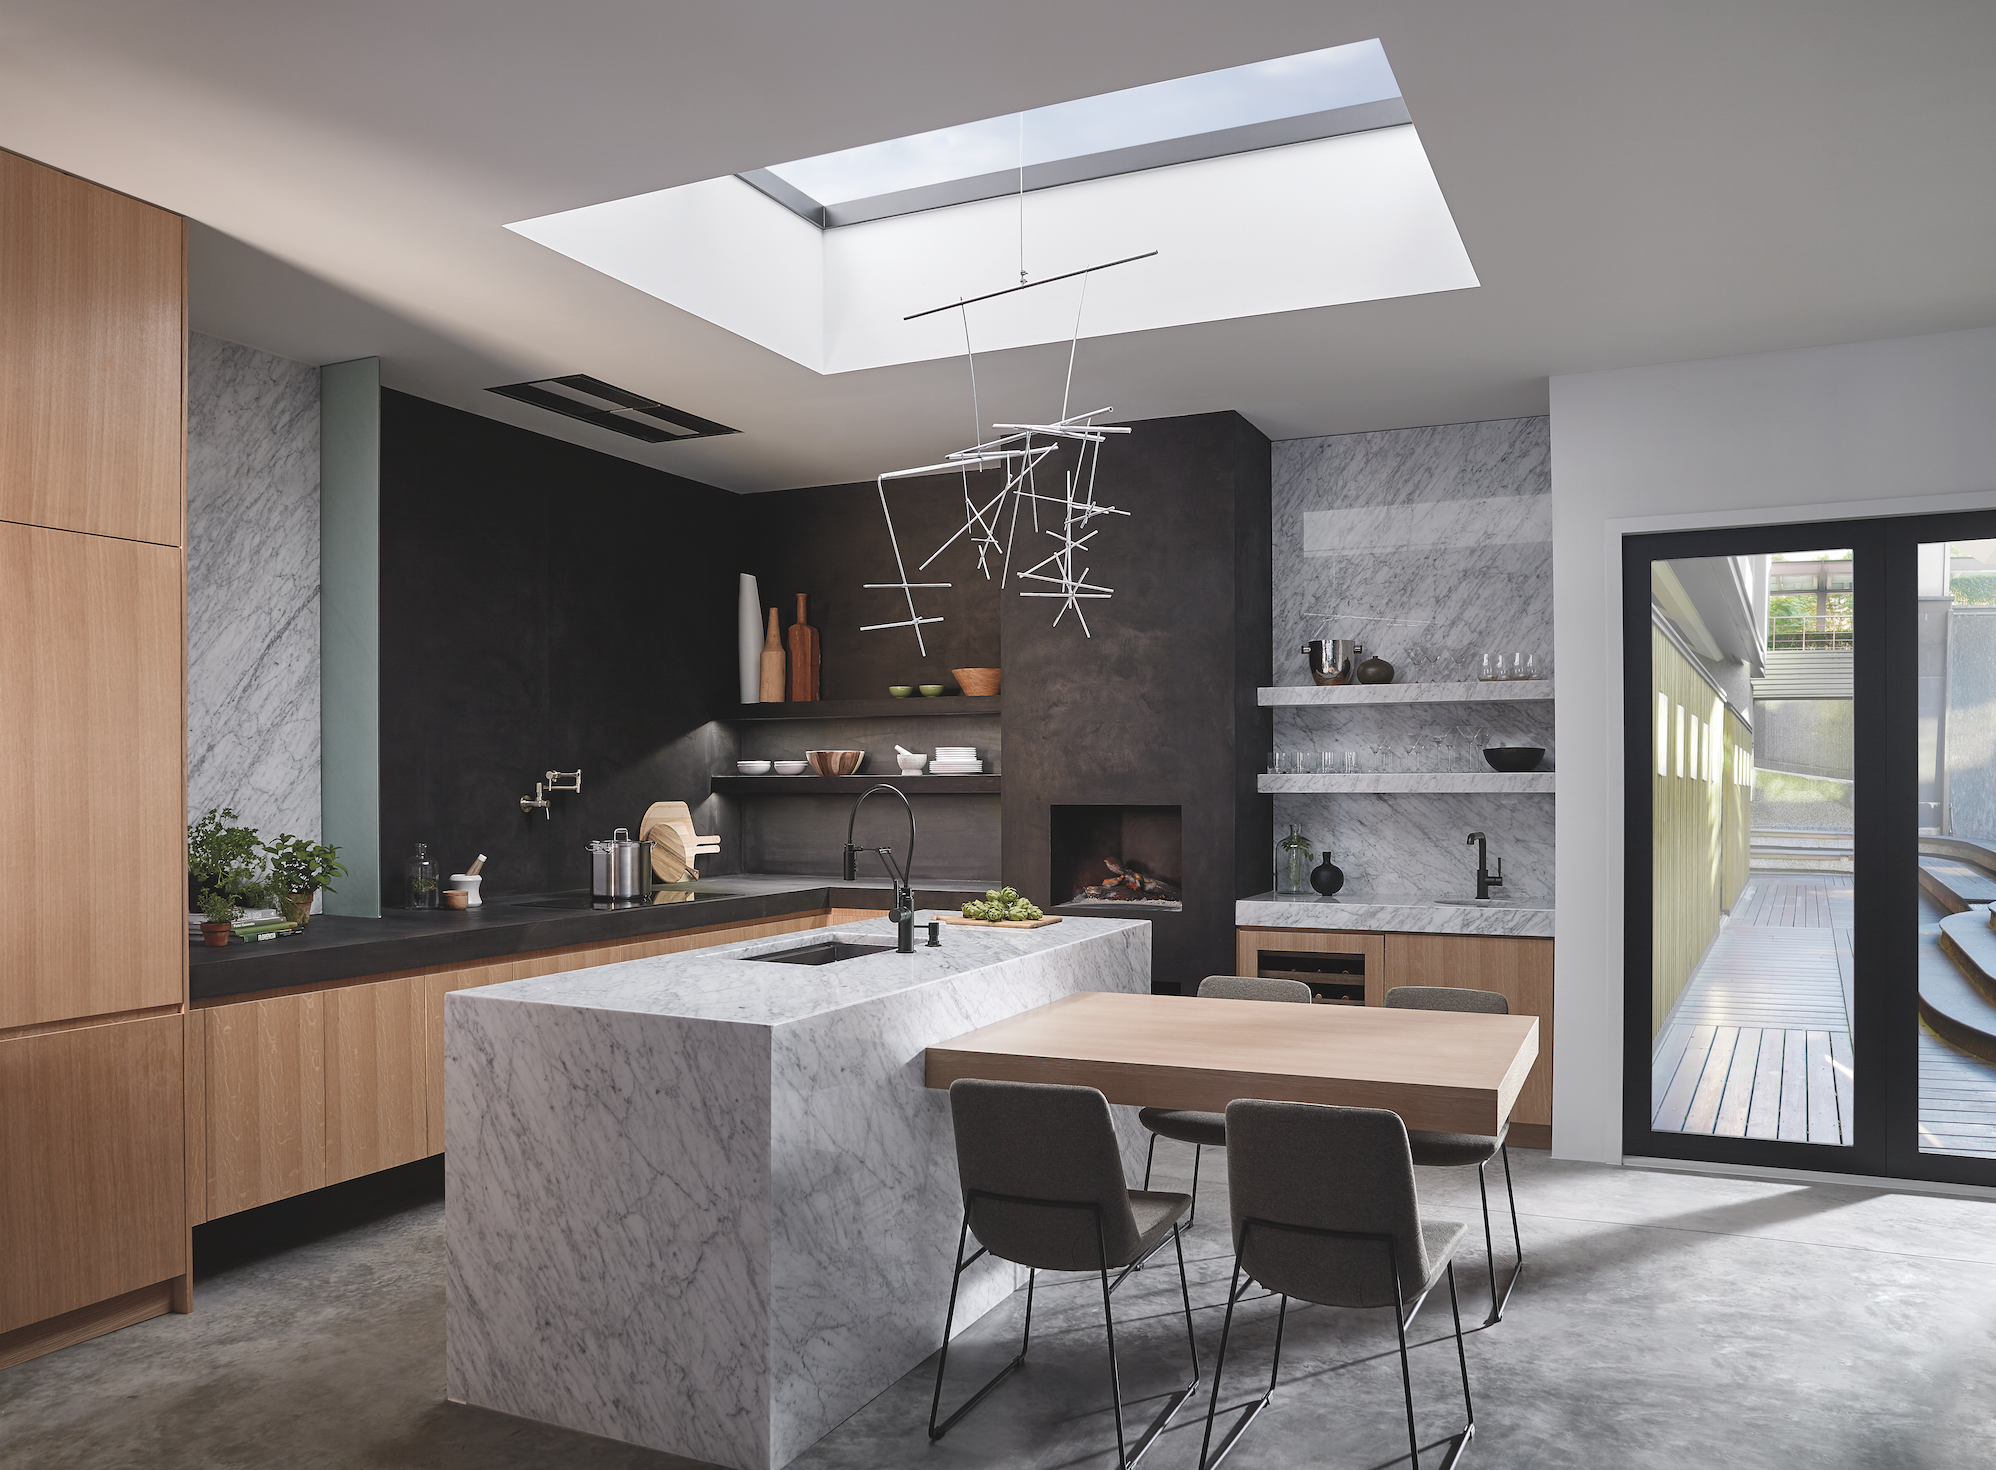 kitchen spaces black faucet for kitchen The Solna kitchen faucet collection from Brizo features crisp lines and simple form inspired by contemporary Scandinavian furniture